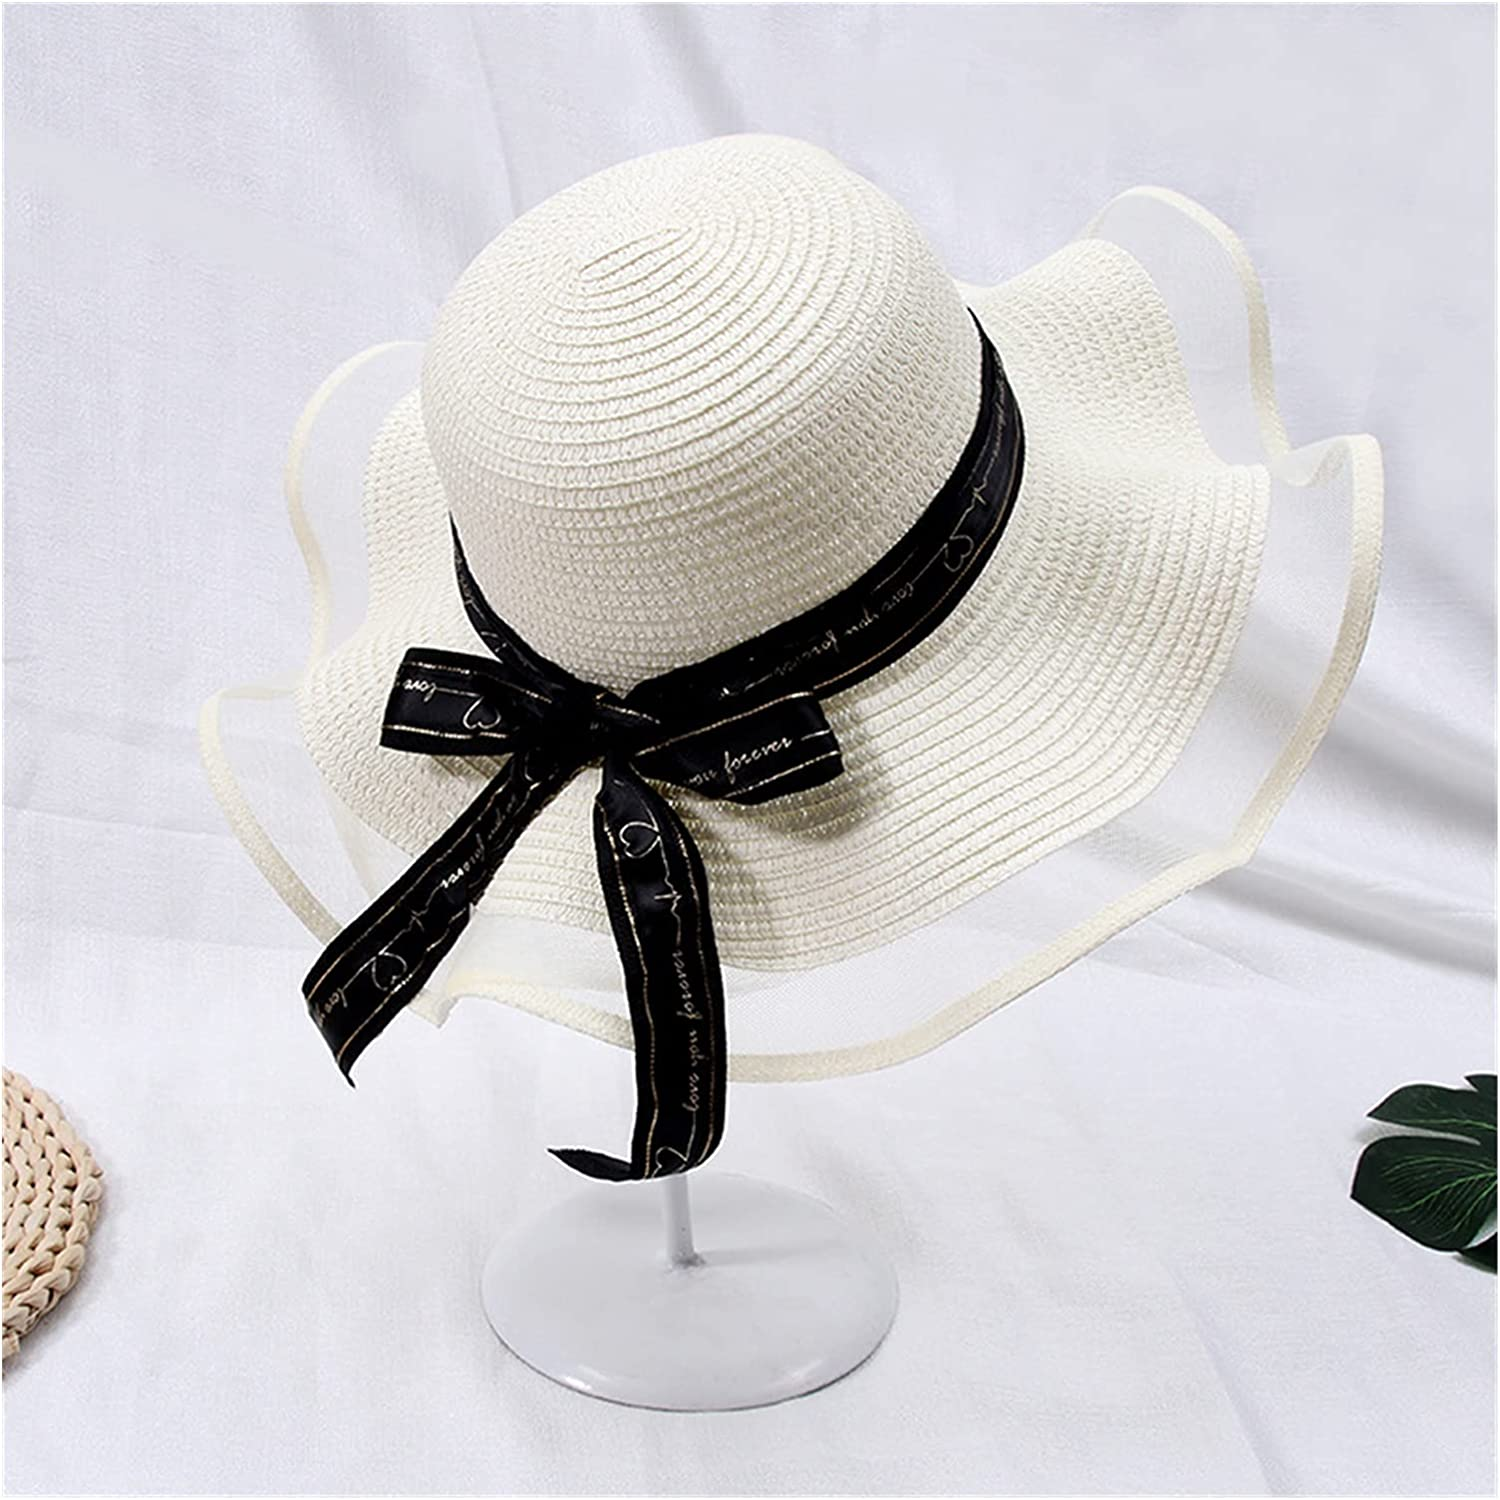 CHENGCHAO Sun hat Fashion Lace Bow Discount mail order Women Hat Straw Big Summer Wi In stock